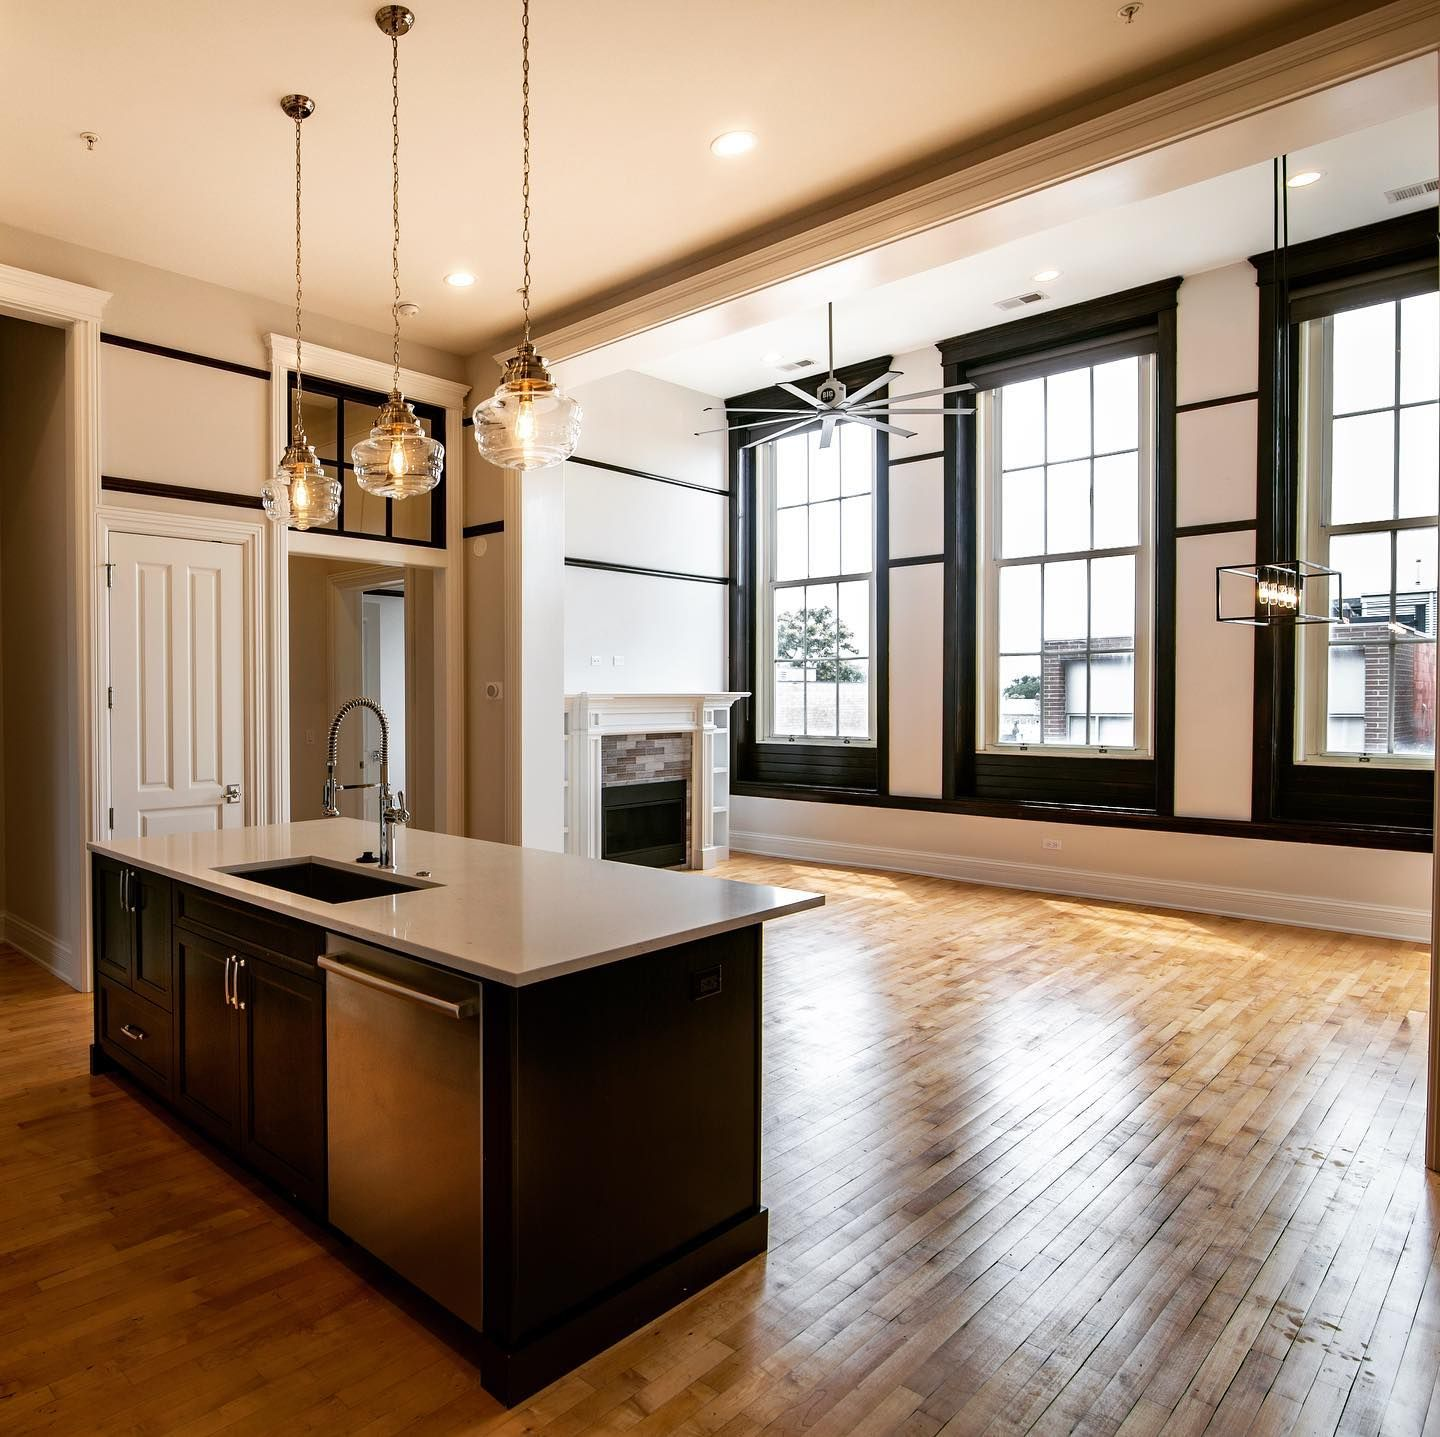 Motley School Apartments For Rent Chicago Chicago Apartment Decor Chicago Apartment Loft Style Apartments